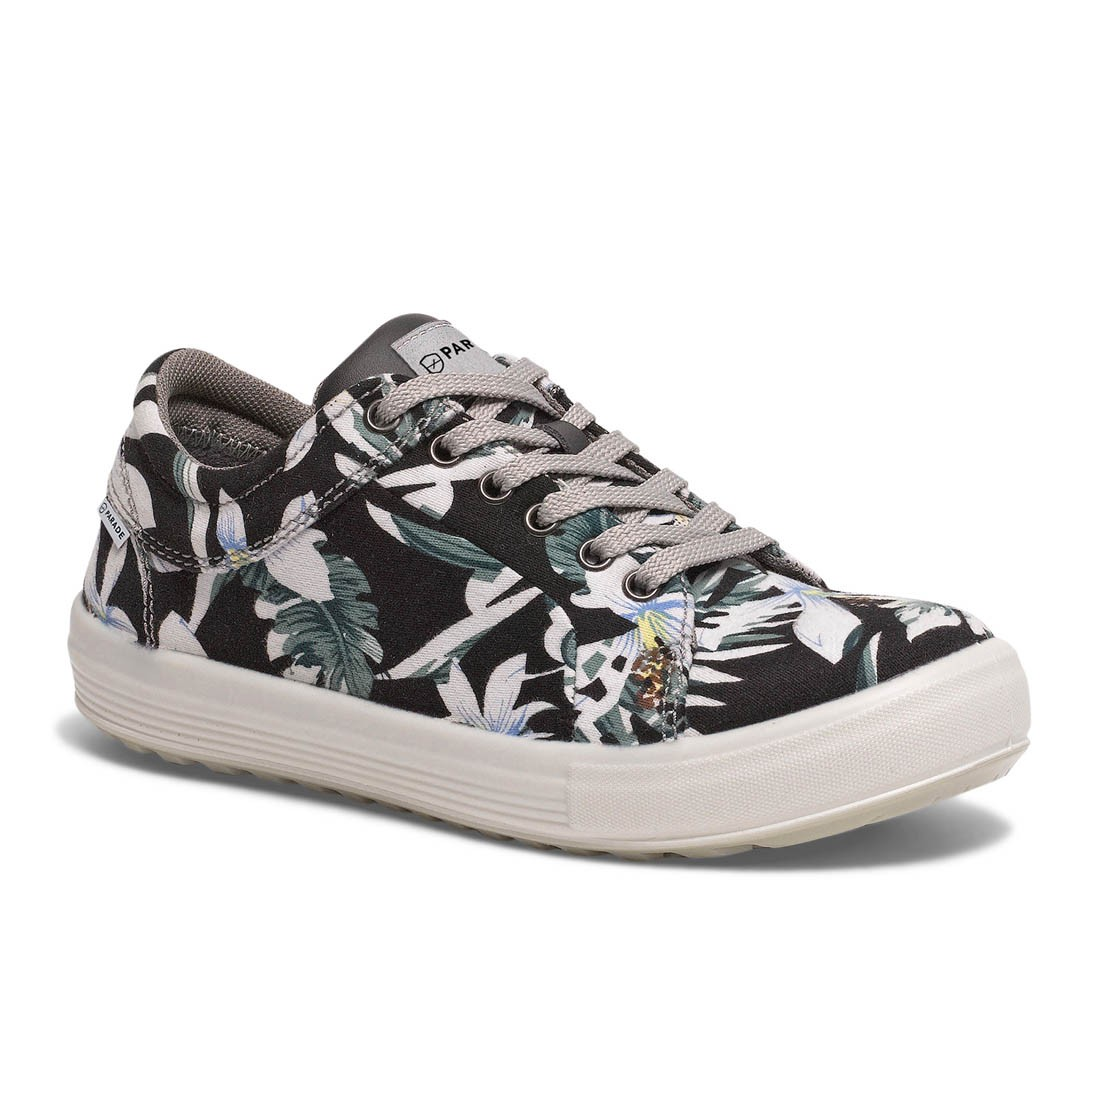 Parade Venice Lightweight Ladies Navy Blue Flower Safety Trainer Shoes